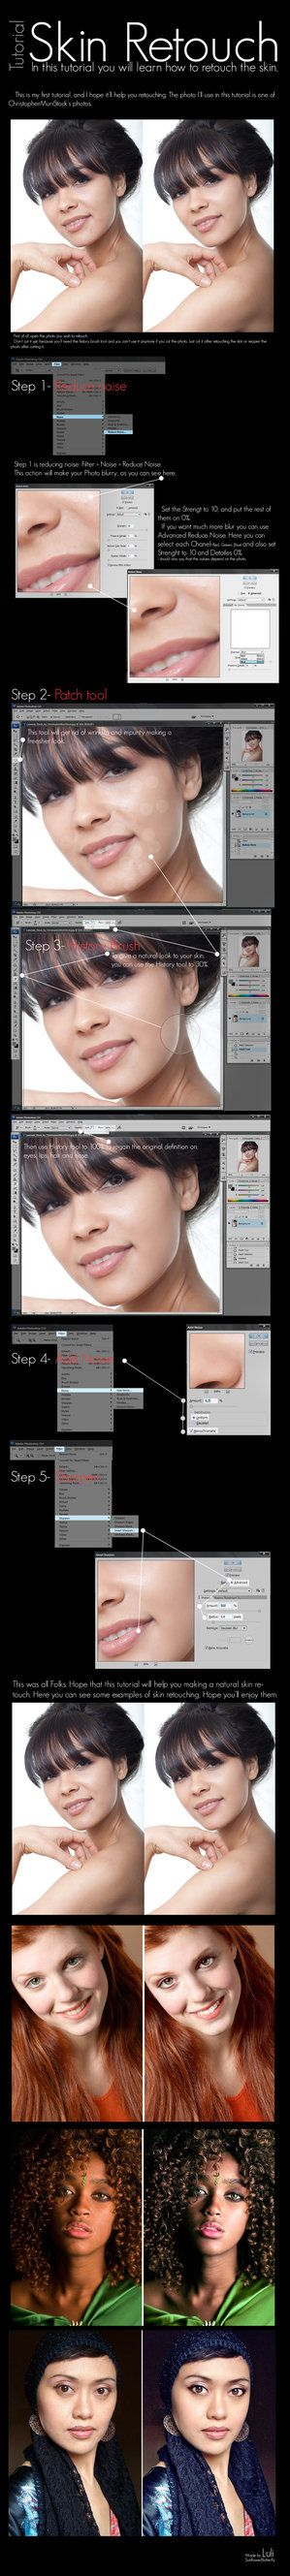 Skin Retouch Tutorial - how to get that picture perfect skin #photoshop...x